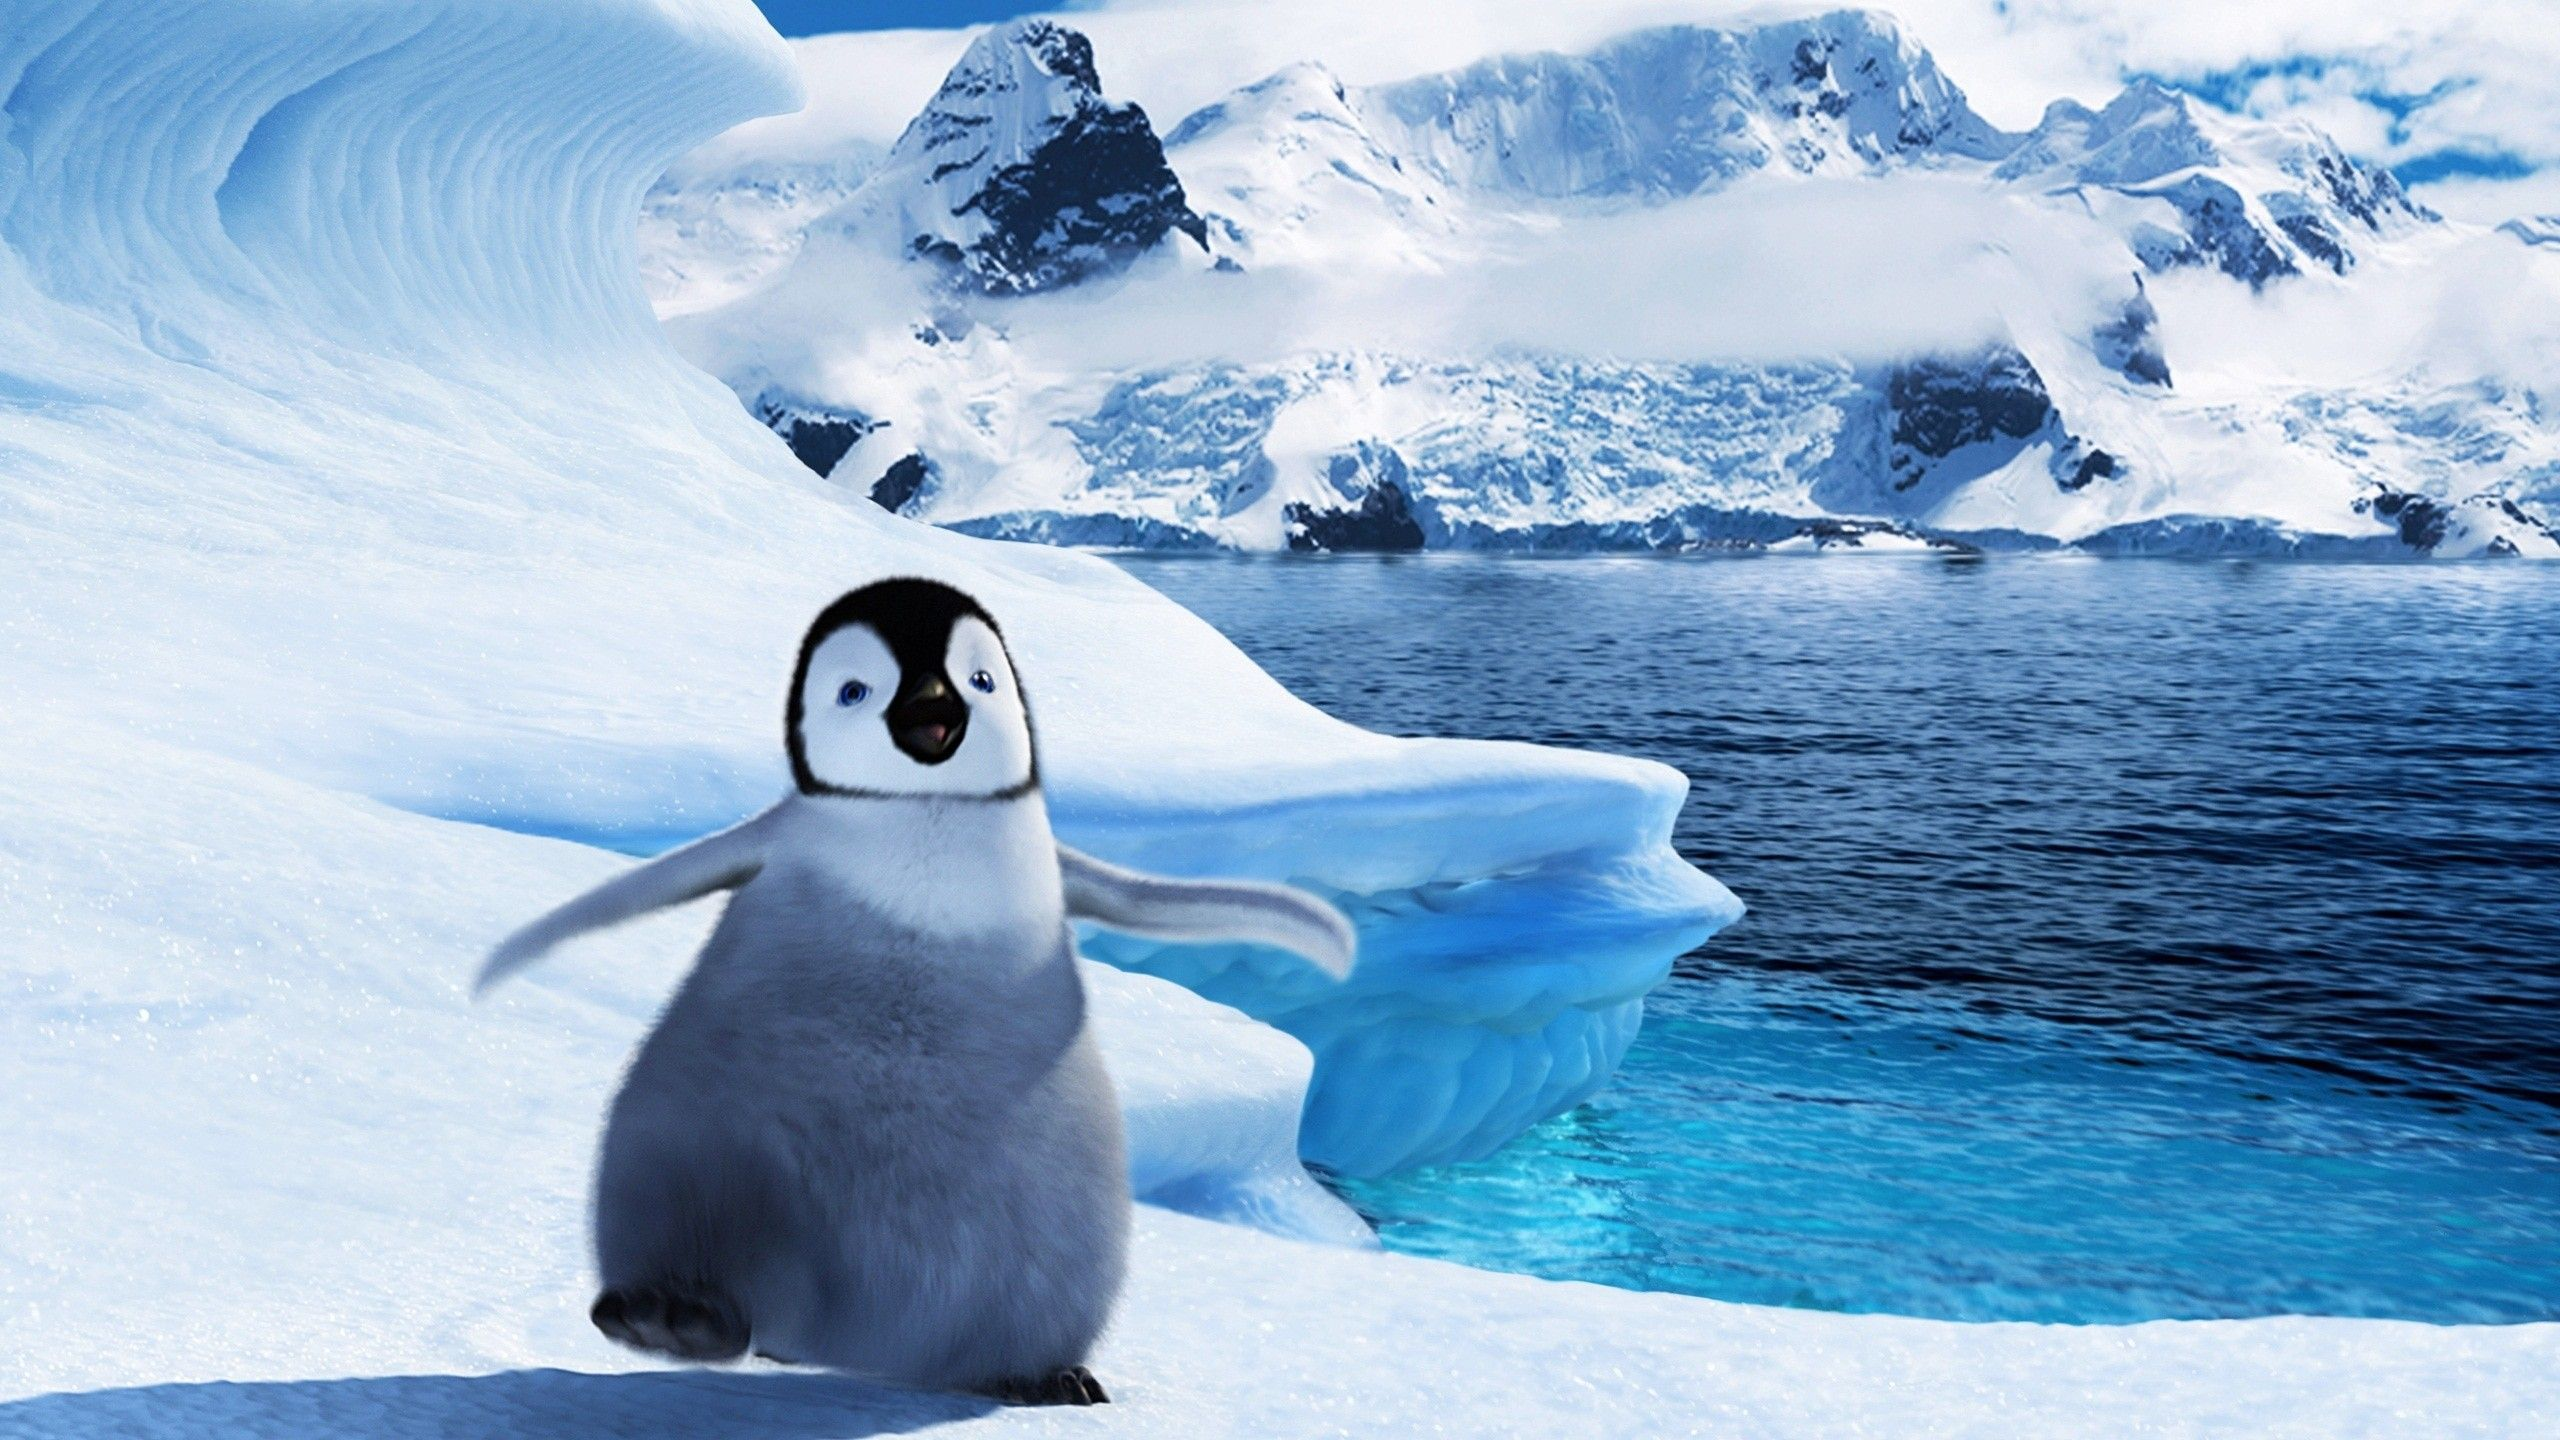 Cute penguins cute mighty pictures - Baby Penguin Wallpaper